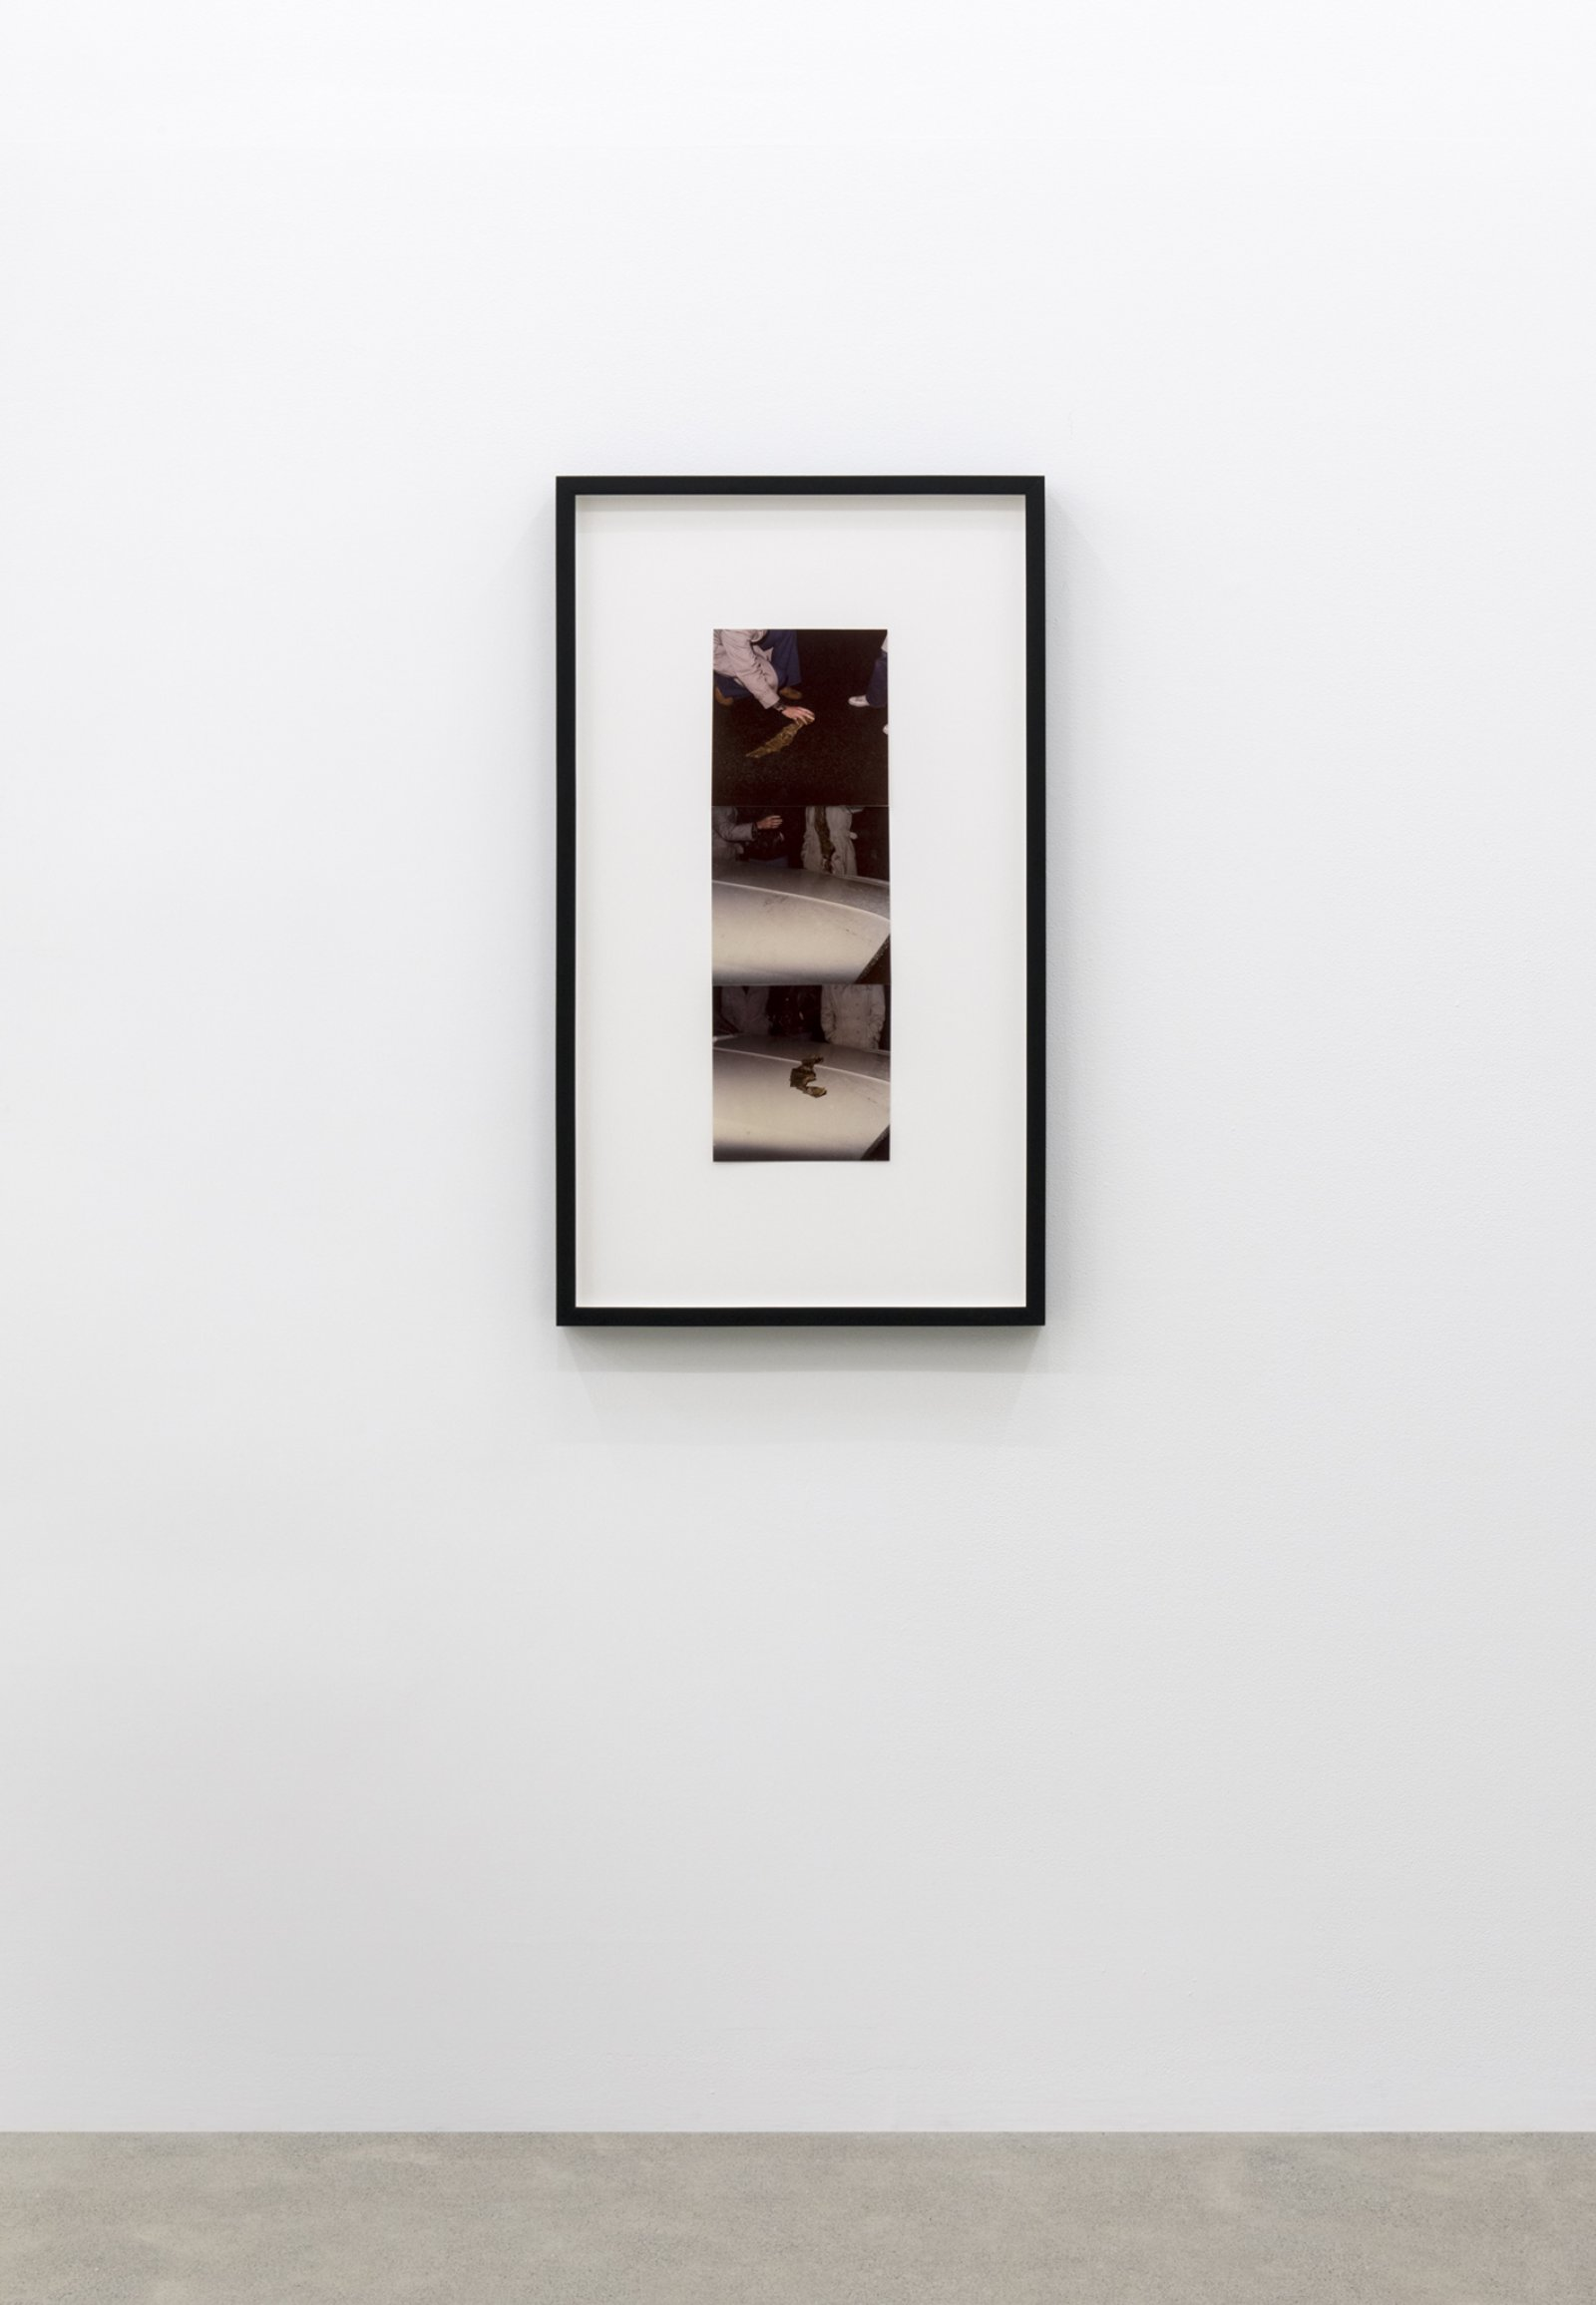 Ian Wallace, Found Object, 1977, 3 colour photographs, 37 x 21 in. (94 x 53 cm)